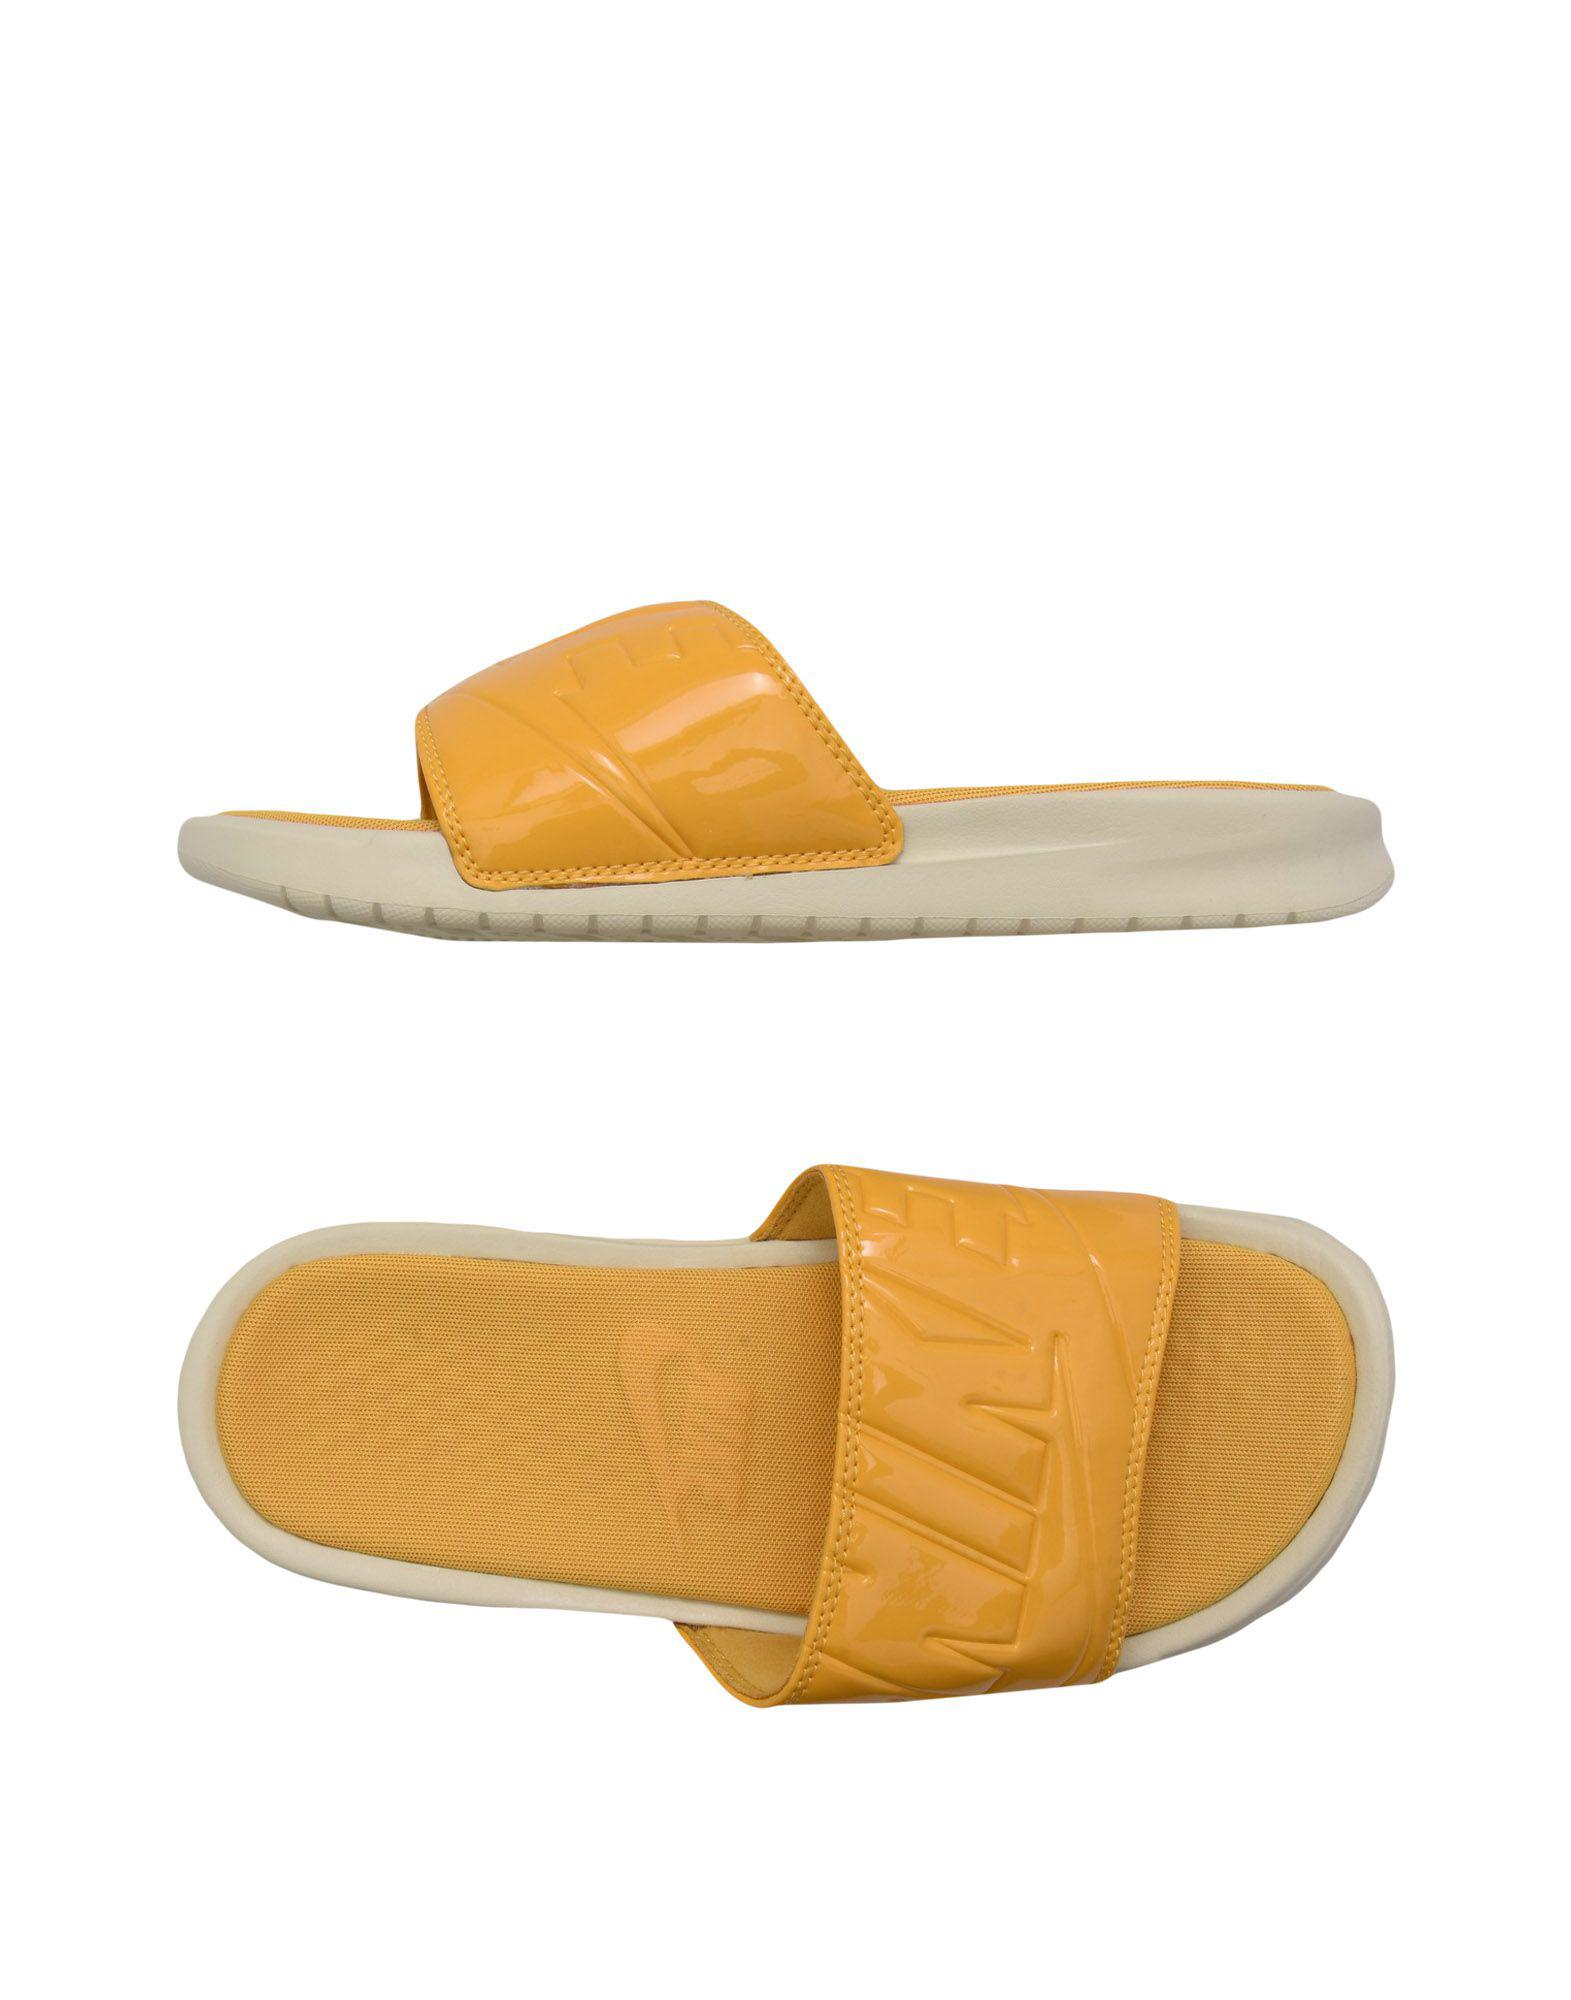 520ab5e27503 Nike Sandals in Yellow - Lyst